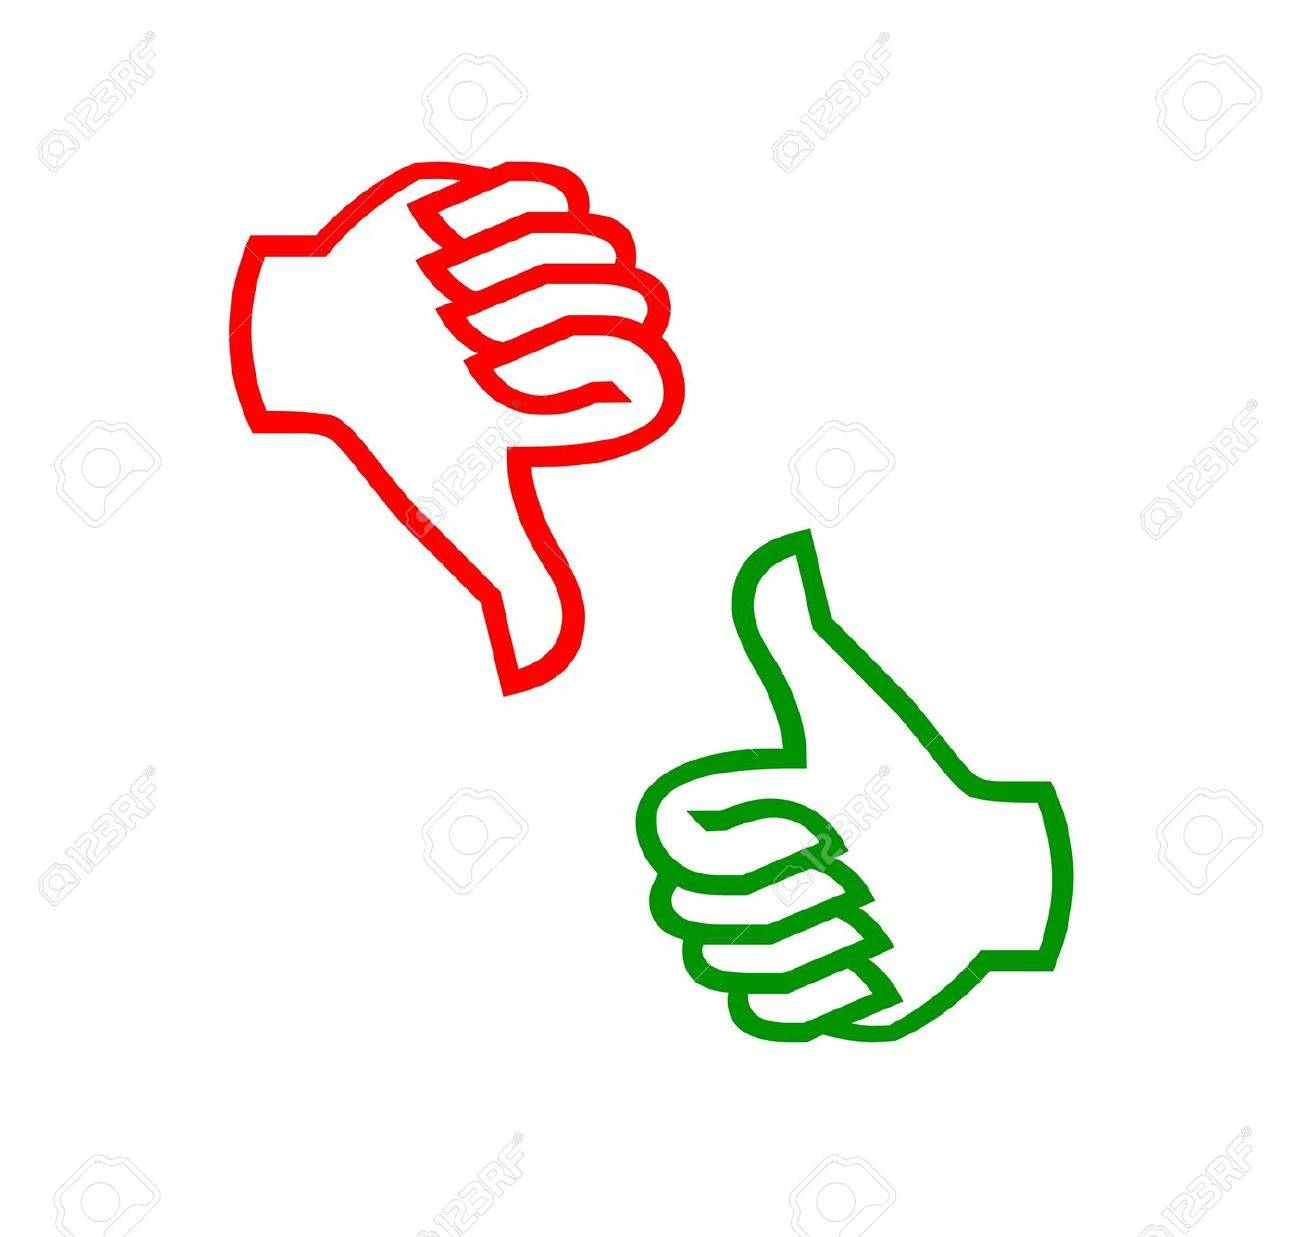 Image result for thumbs up or down